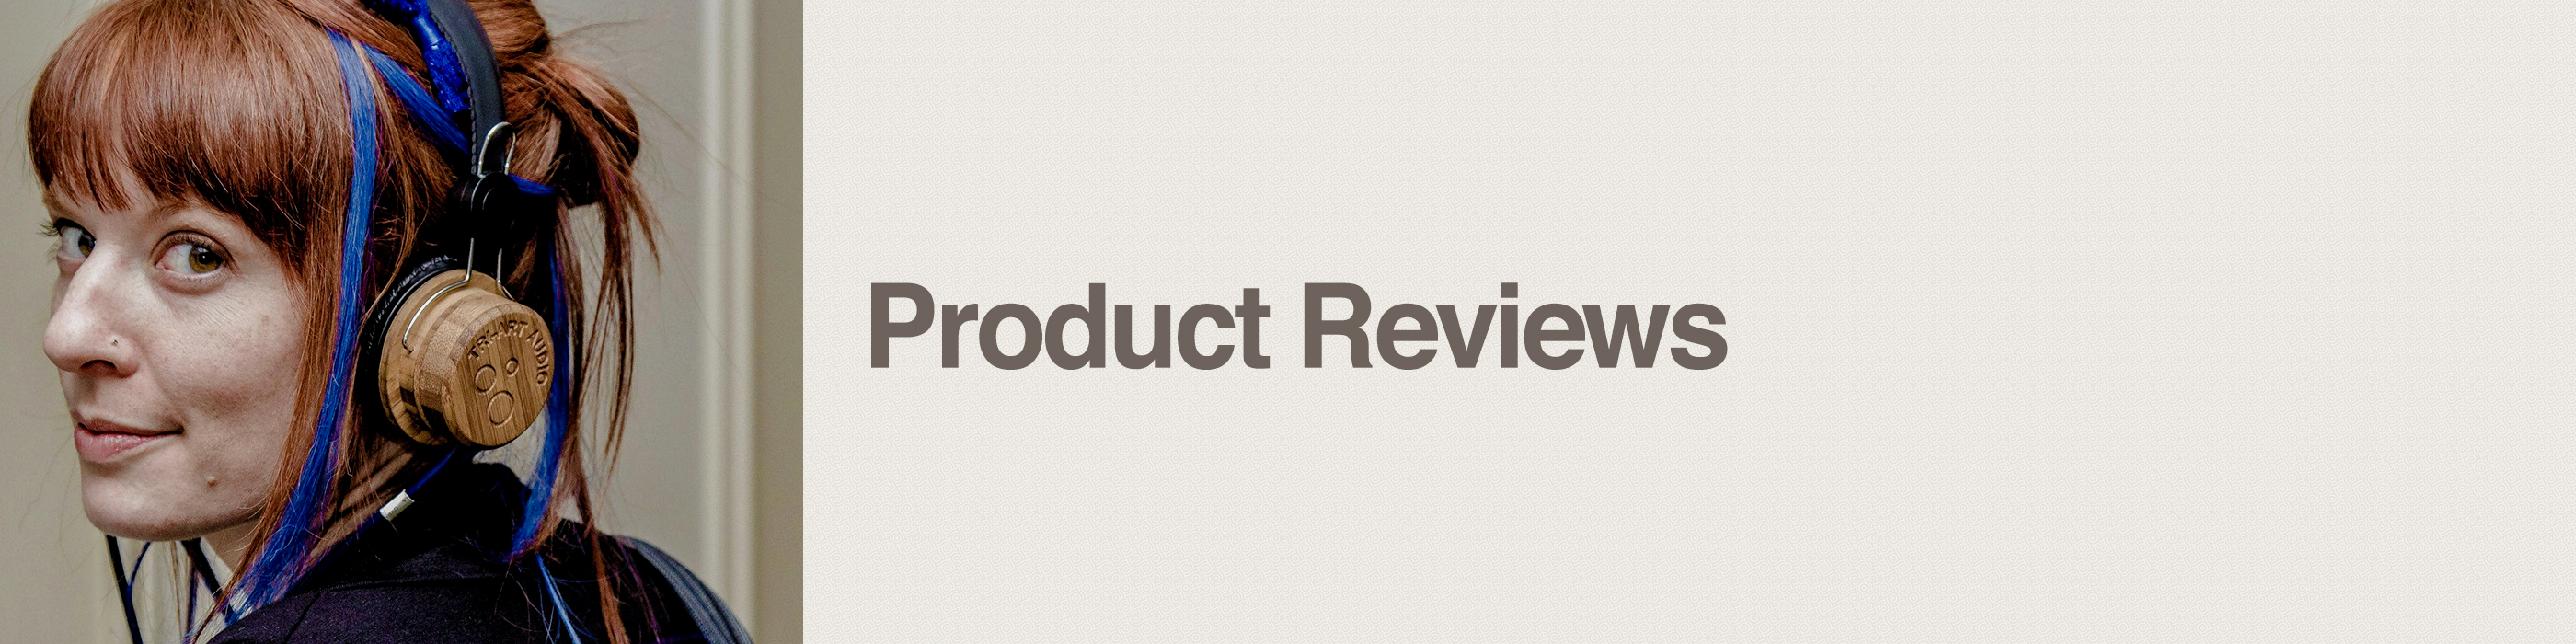 product reviews header